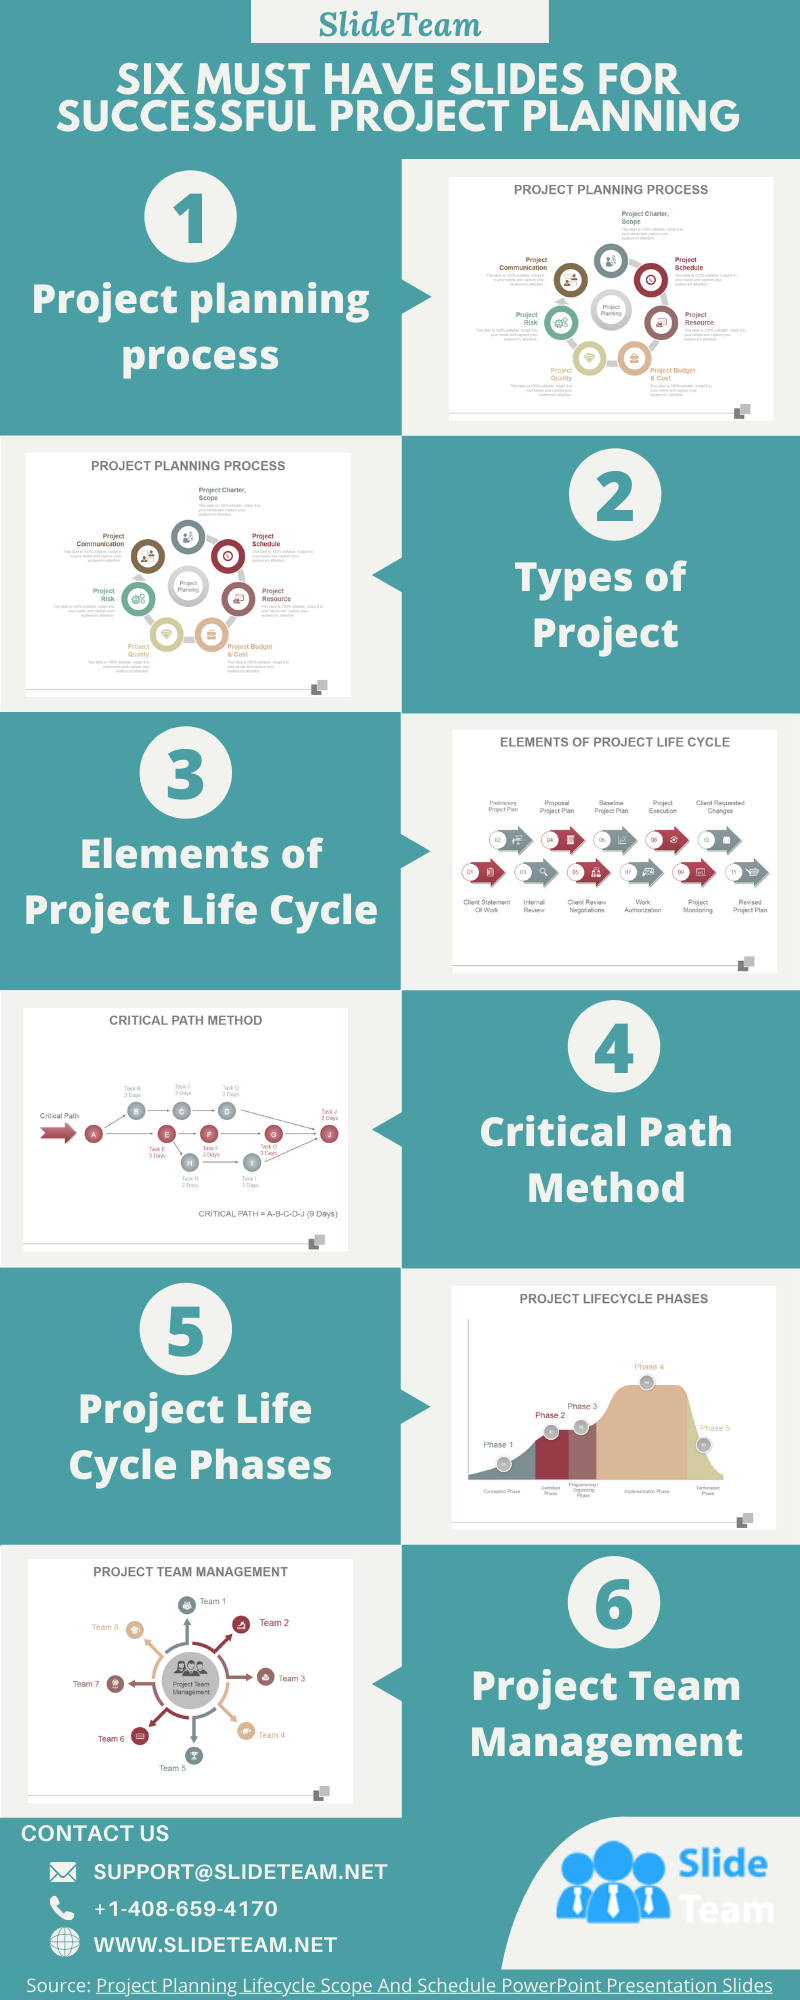 Six Must Have Slides For Successful Project Planning